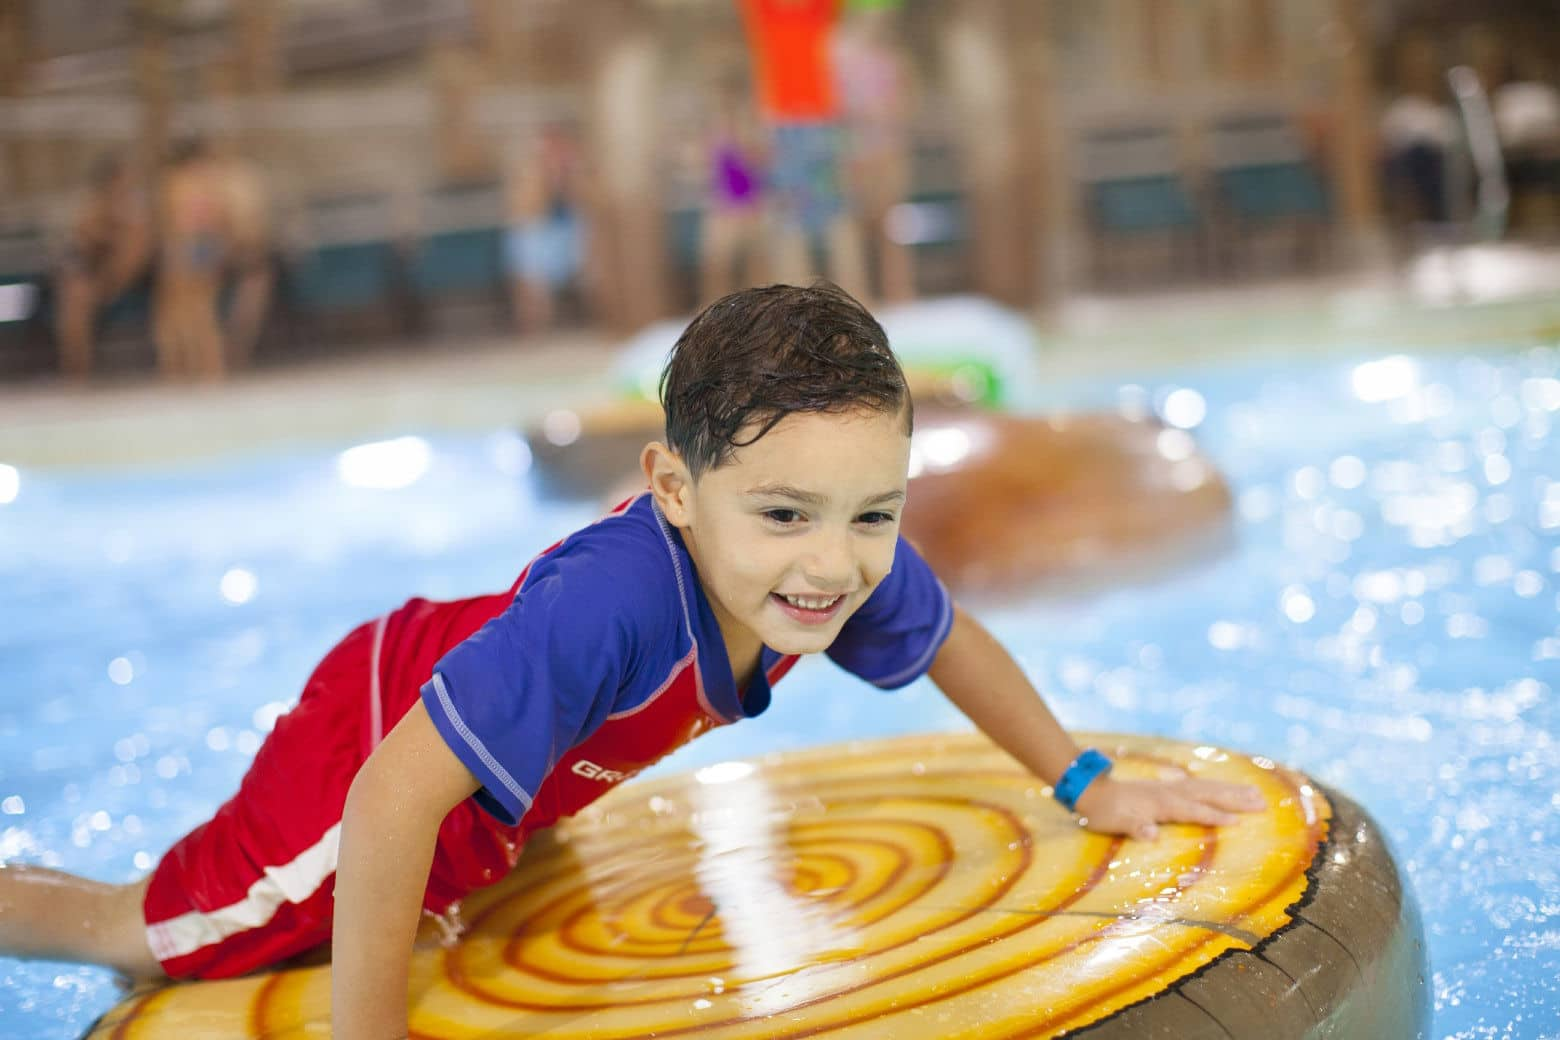 Chicago-based Great Wolf Resorts Inc., which operates 18 indoor and outdoor water parks in North America, including an indoor park in Williamsburg, Virginia, is considering a $200 million water park and lodge in Cecil County, Maryland. (Courtesy Great Wolf Resorts Inc.)